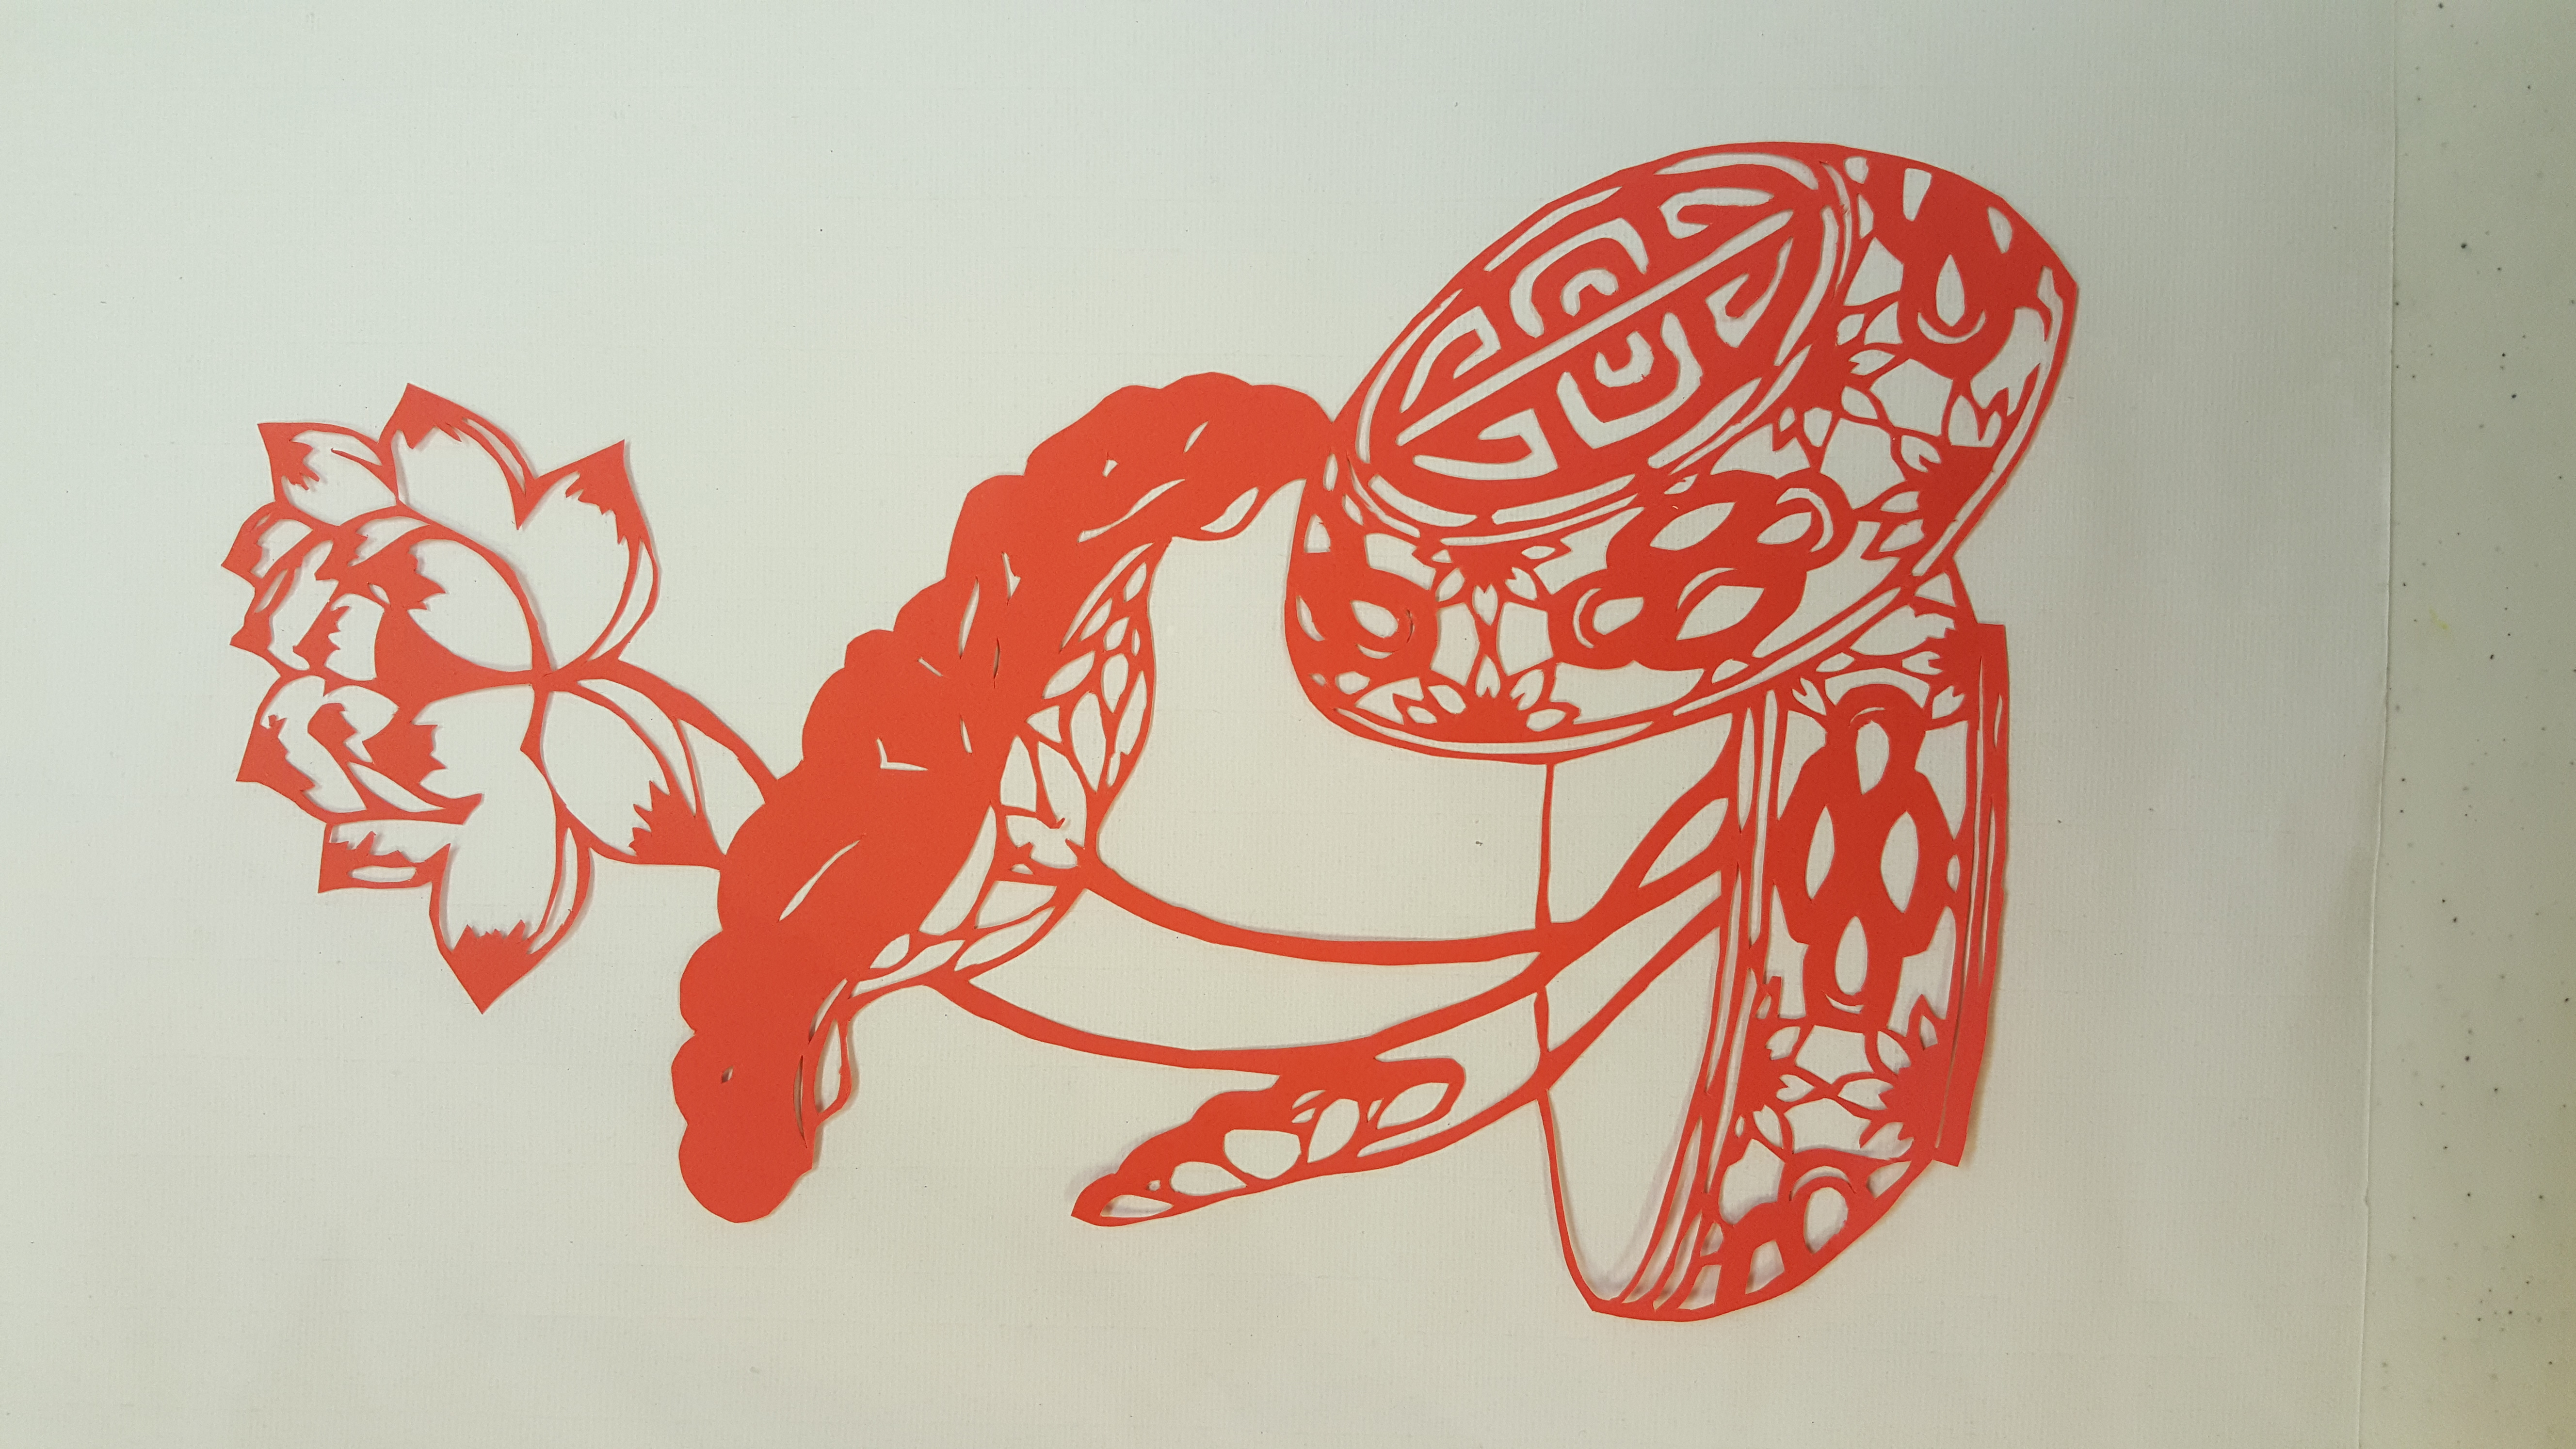 Chinese Paper Cutting Student's work